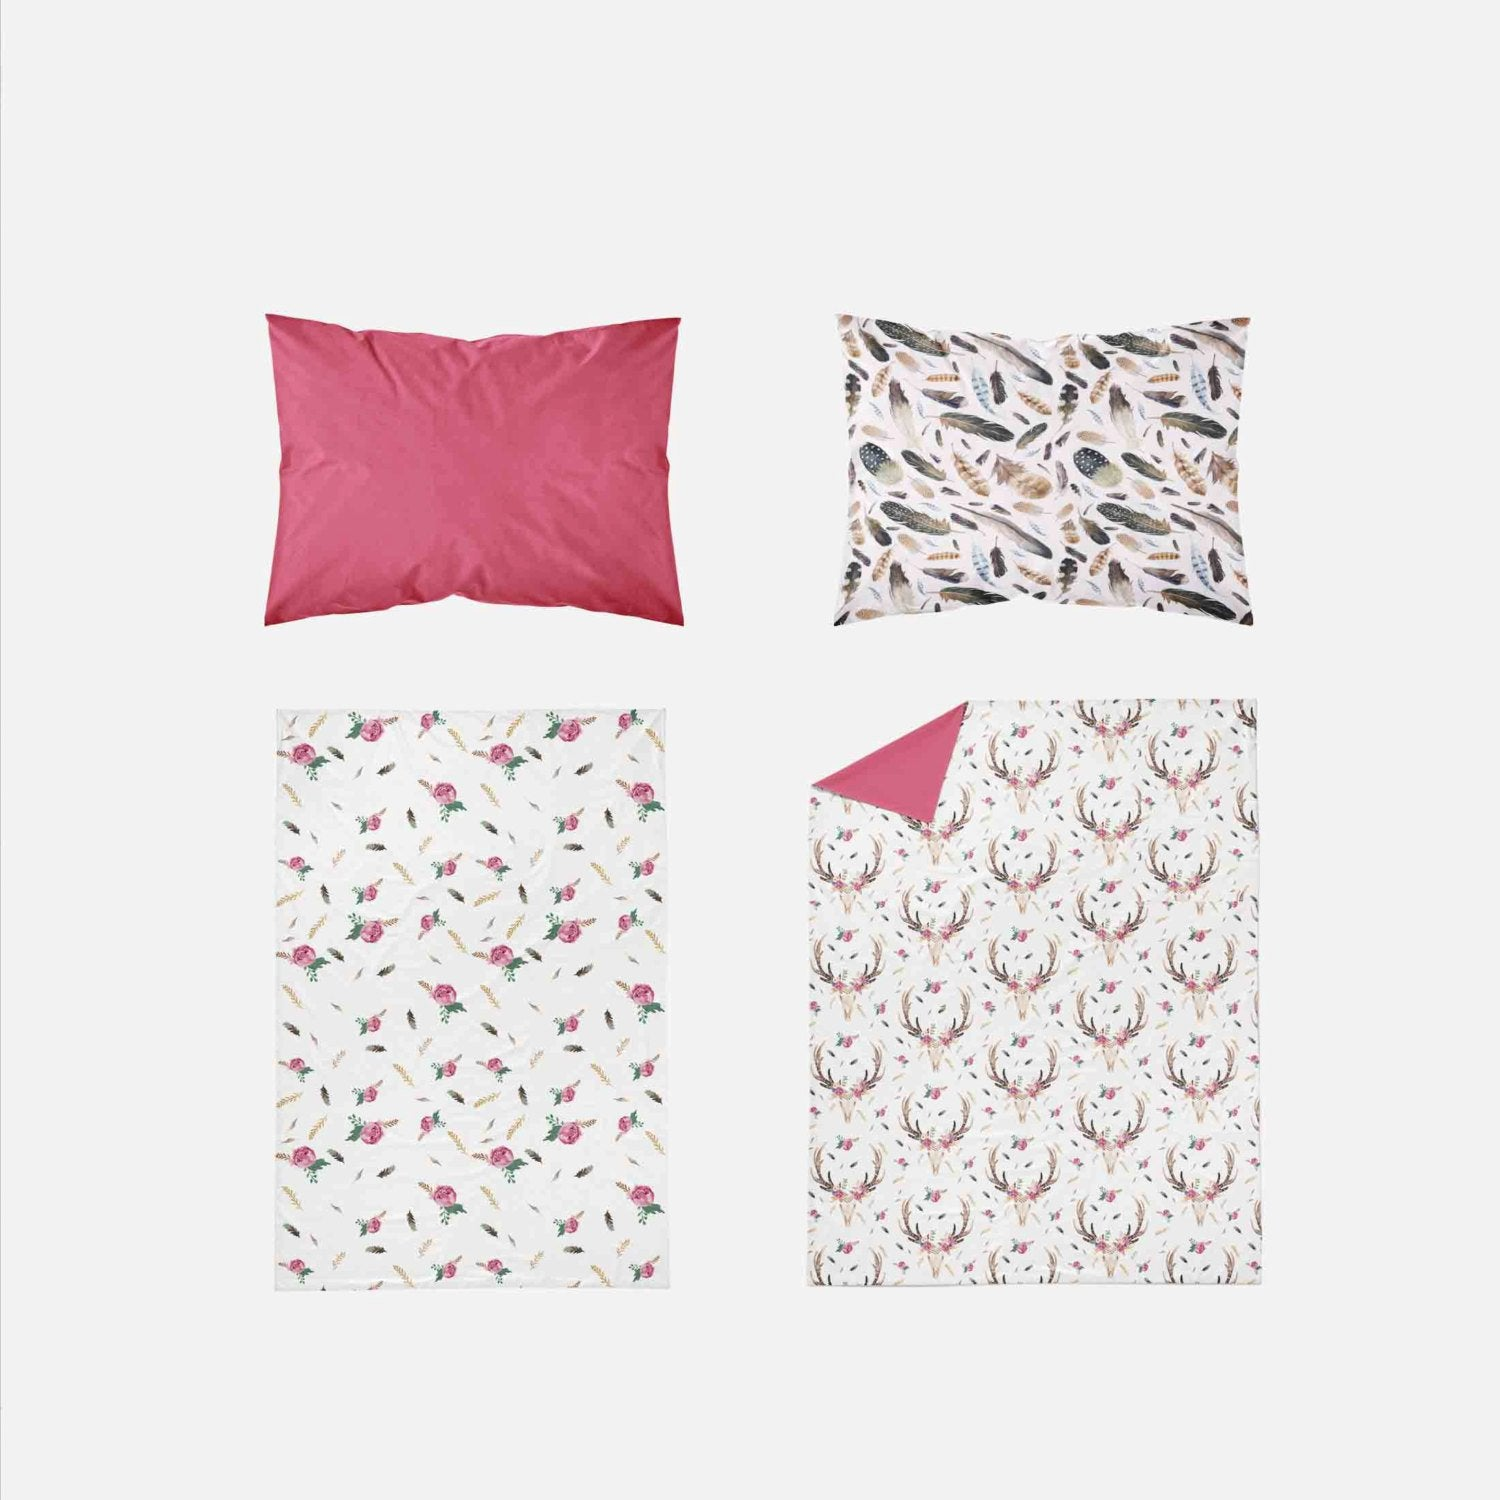 Toddler Bedding Sets - Pink Boho Skull Flowers Feathers - Orange Blossom Special  @orangeblossomspecial805